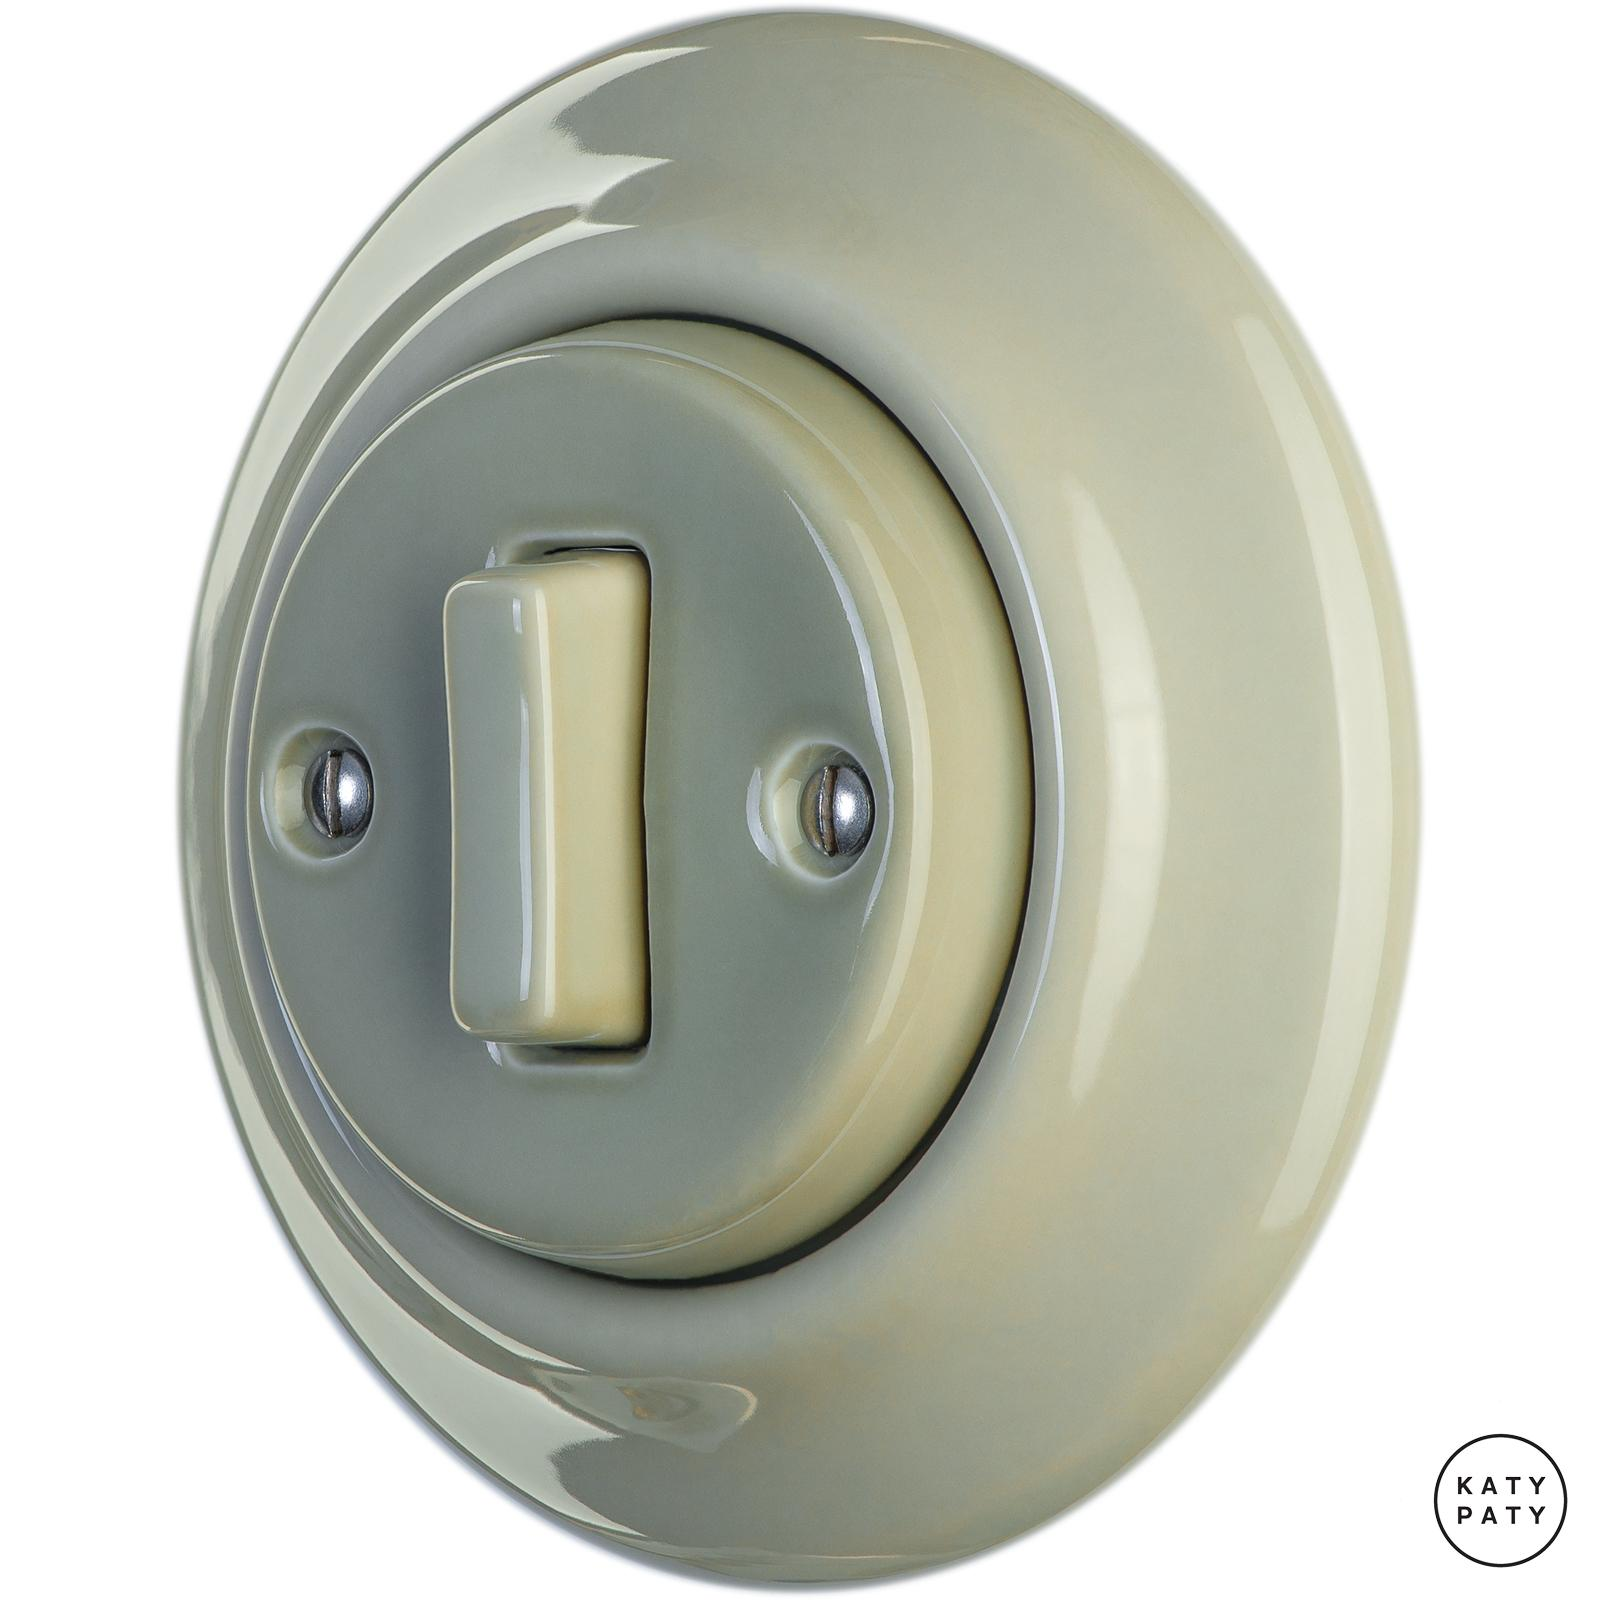 Porcelain switches - a single key - SLIM ()  - CHLORA | Katy Paty